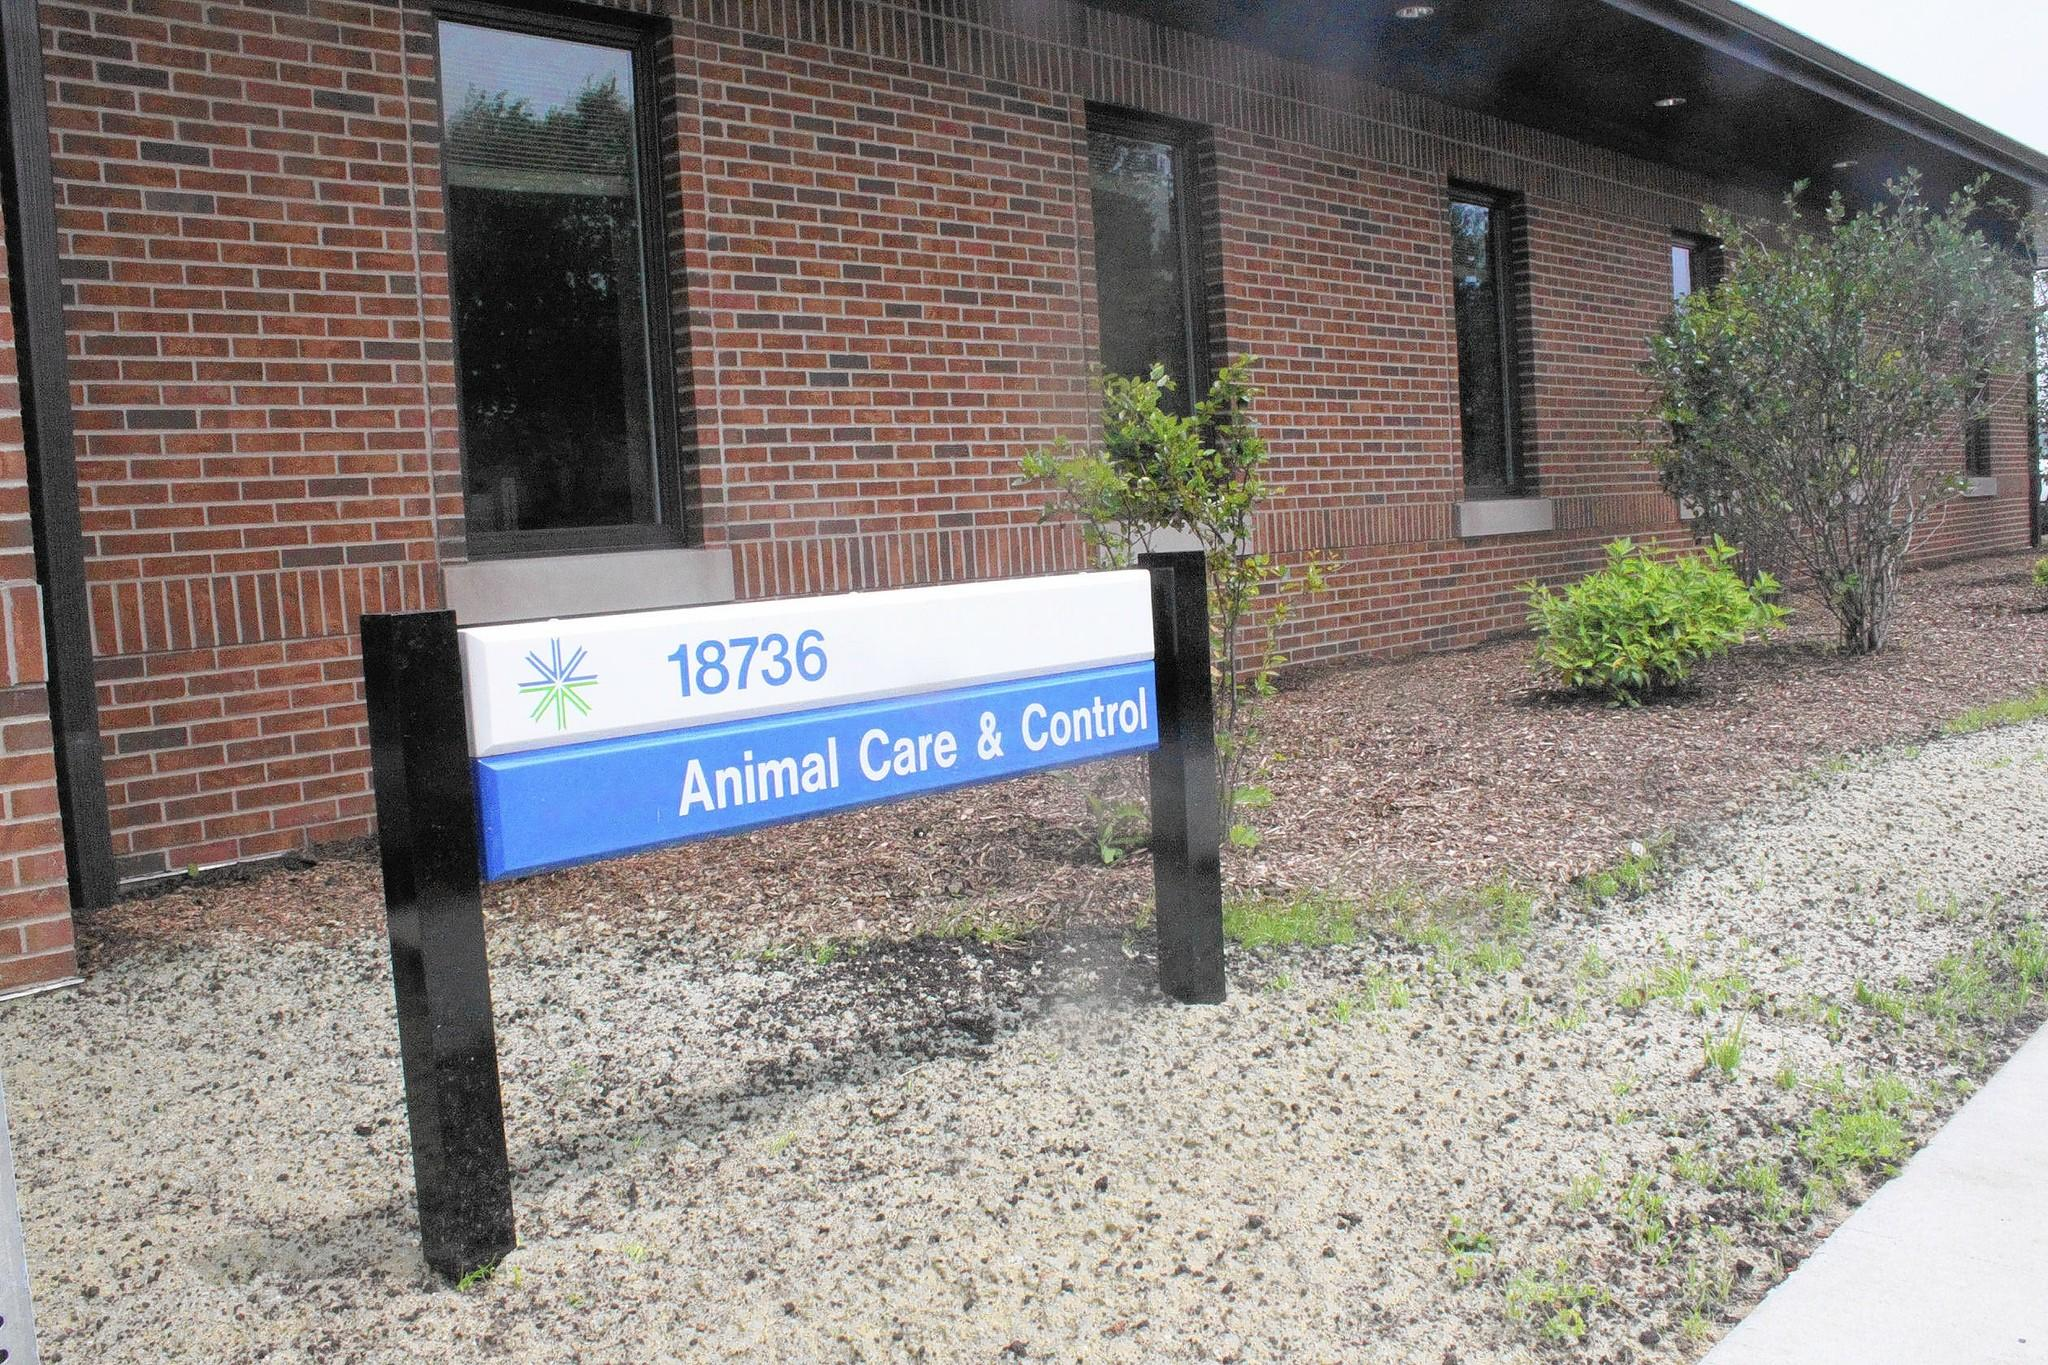 A new Lake County Animal Control facility will open July 25 on Peterson Road near Libertyville.